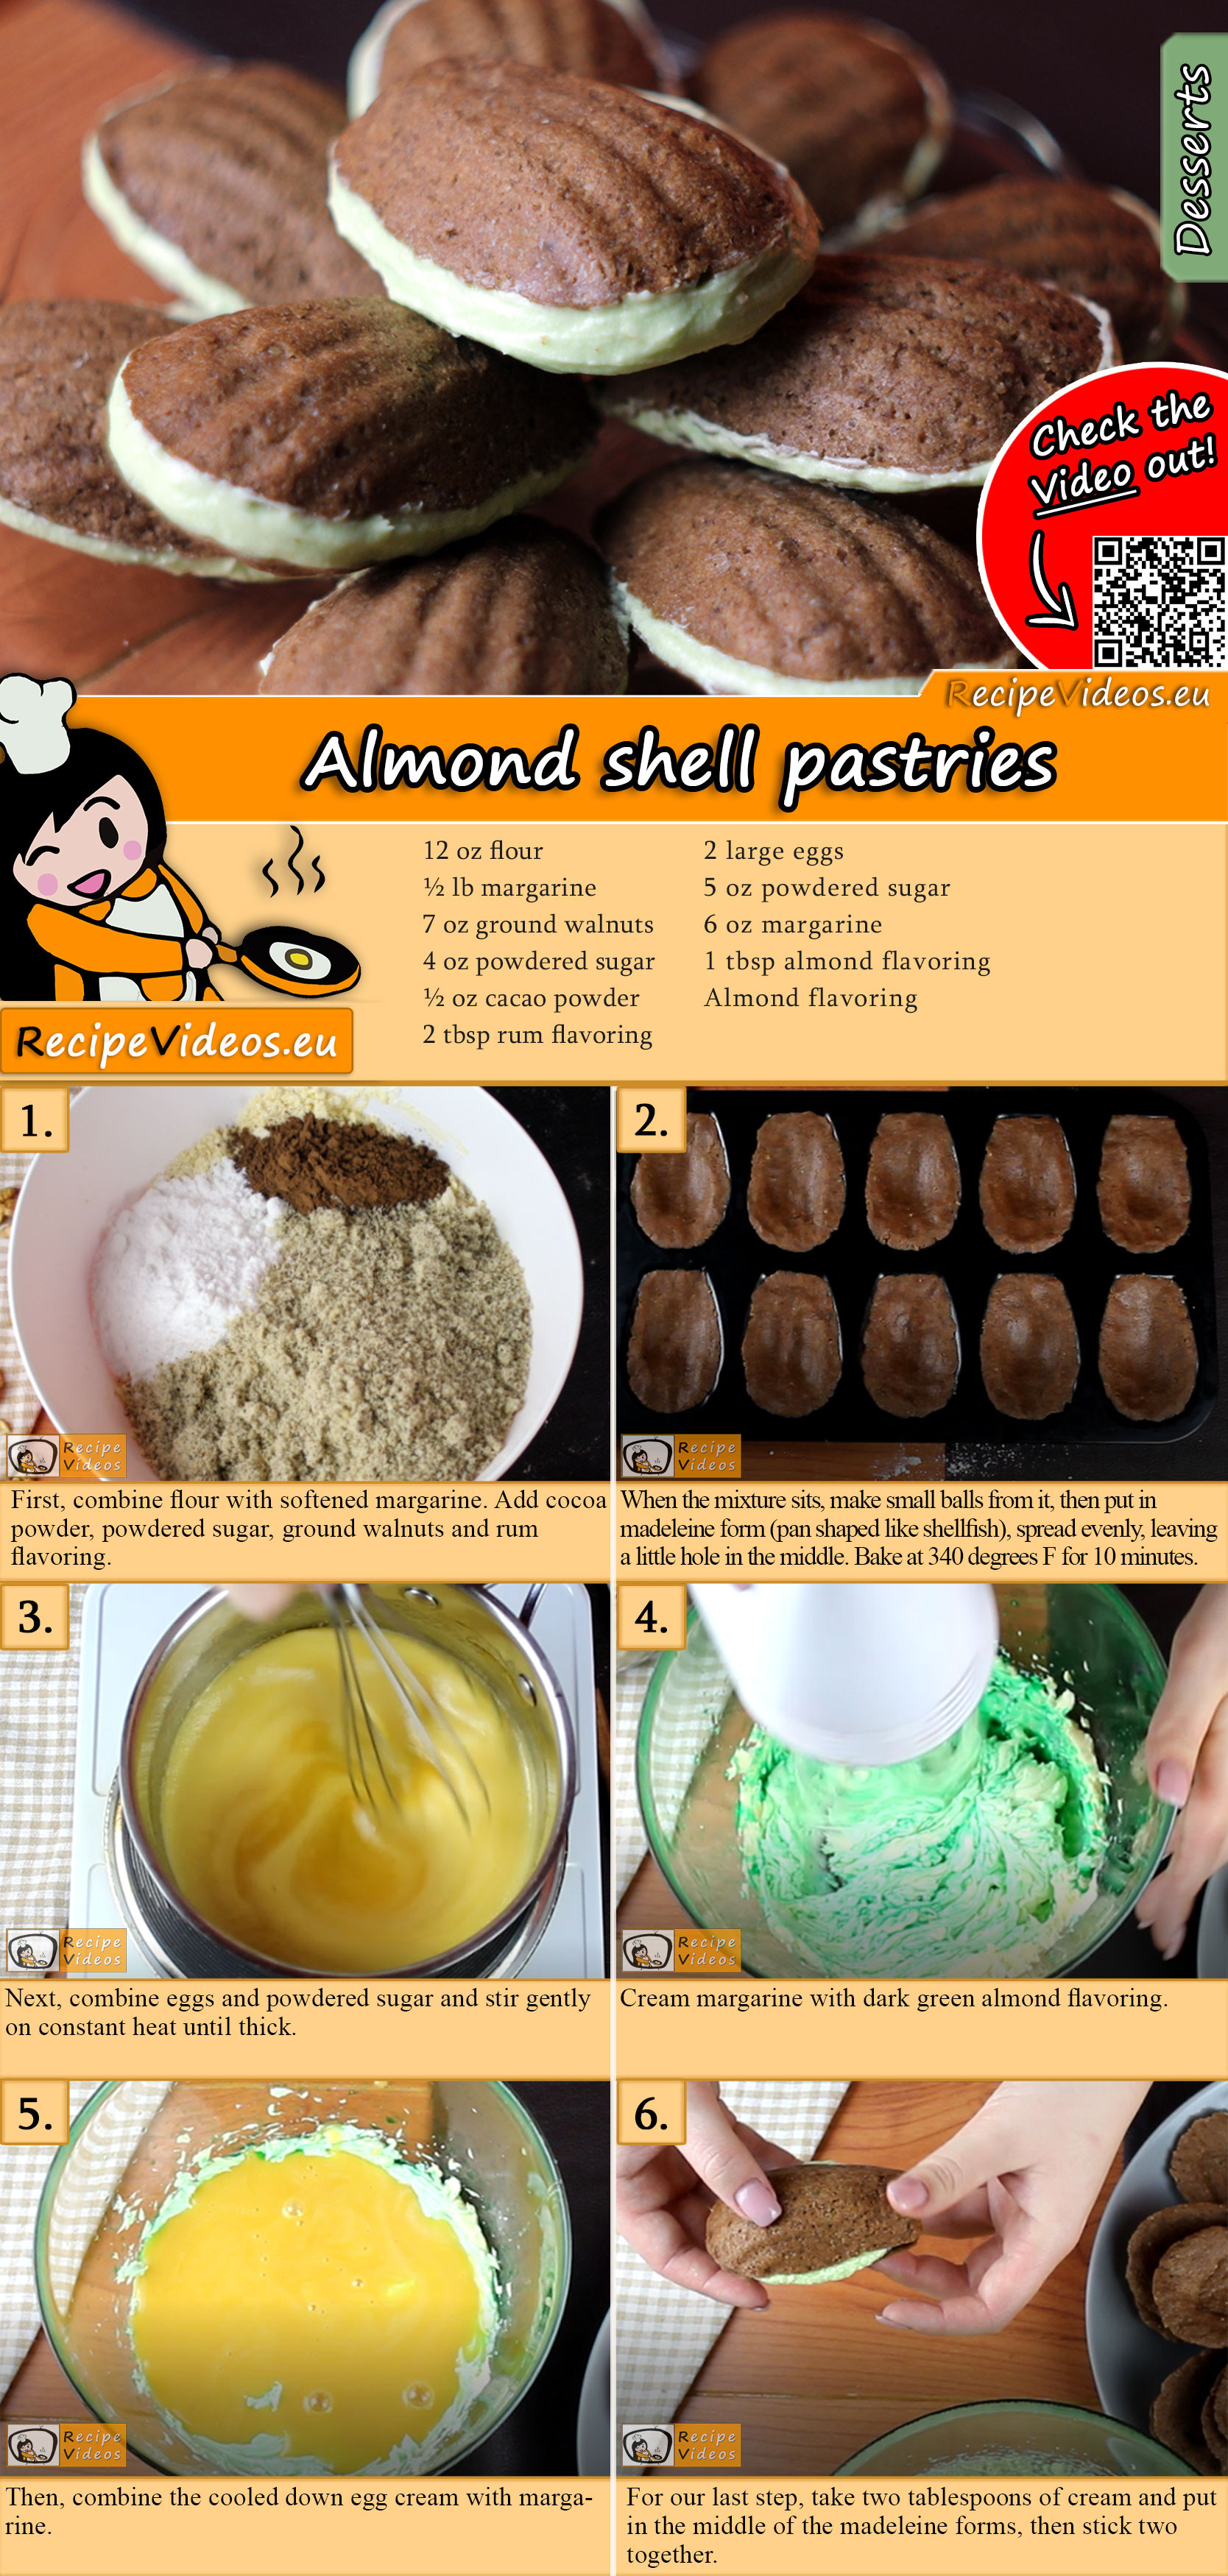 Almond shell pastries recipe with video